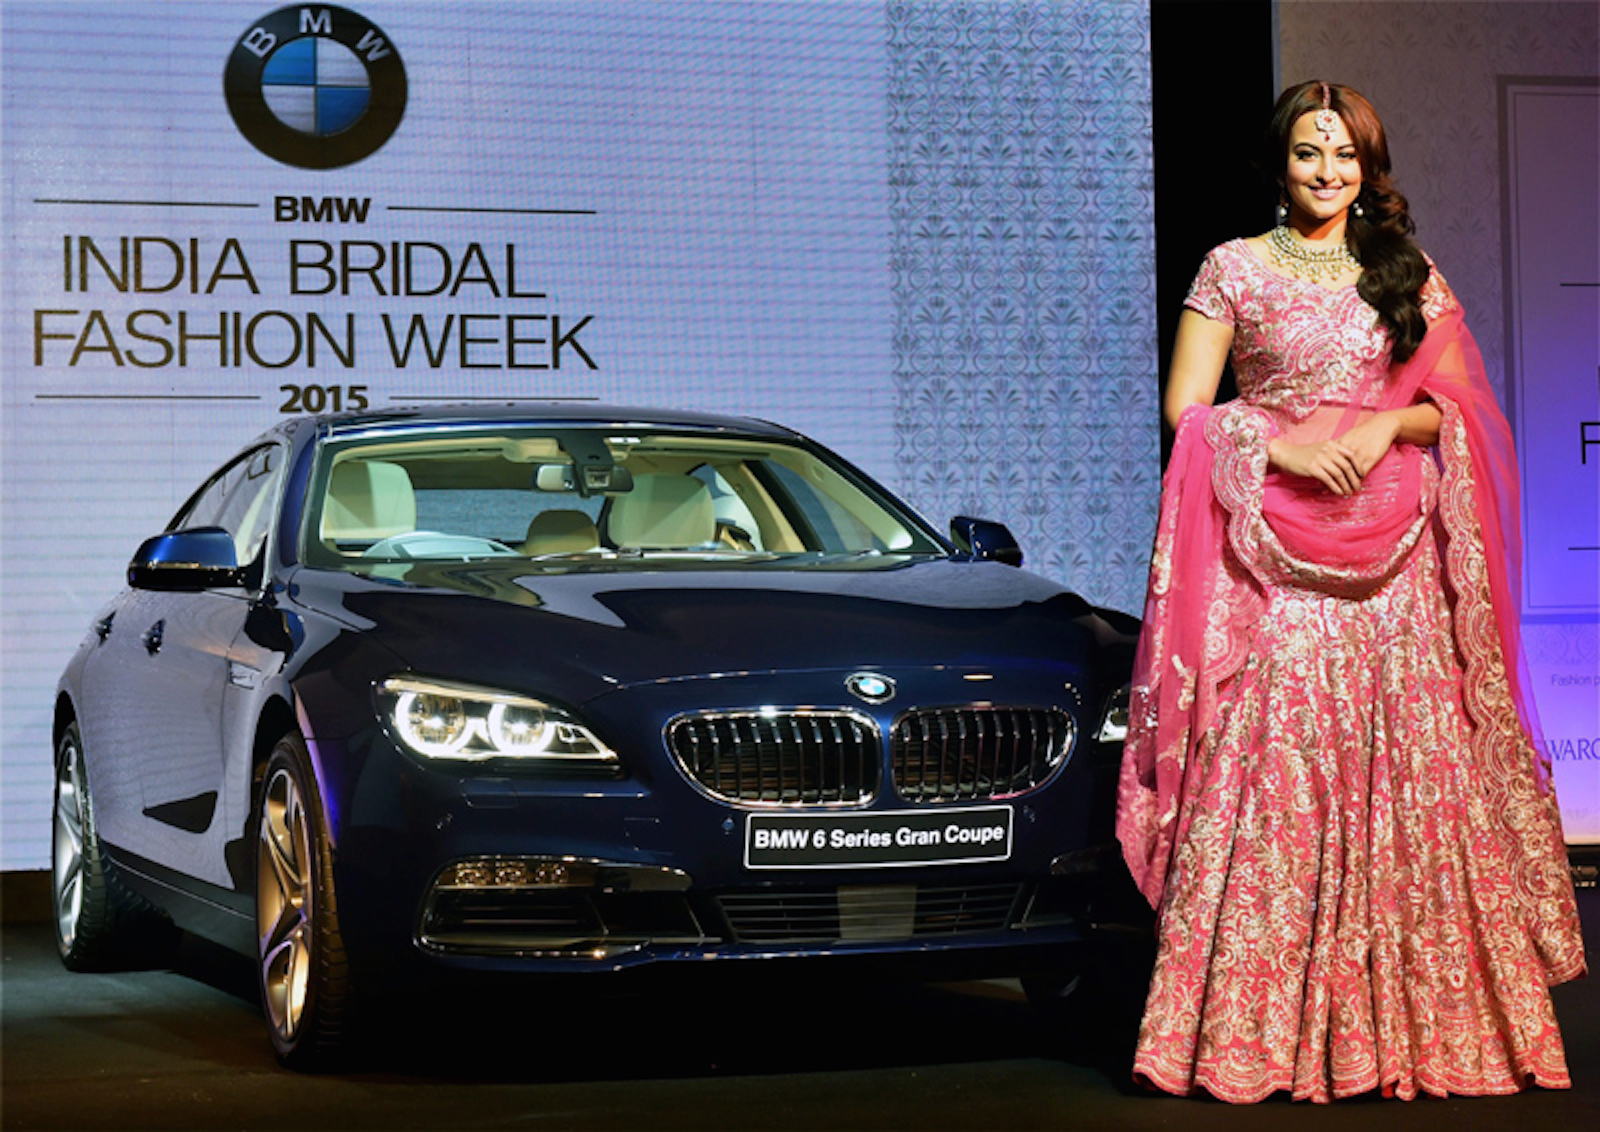 BMW bmw 6 gran coupe 2015 : BMW Launches 6 Series Gran Coupe Facelift in India - GTspirit